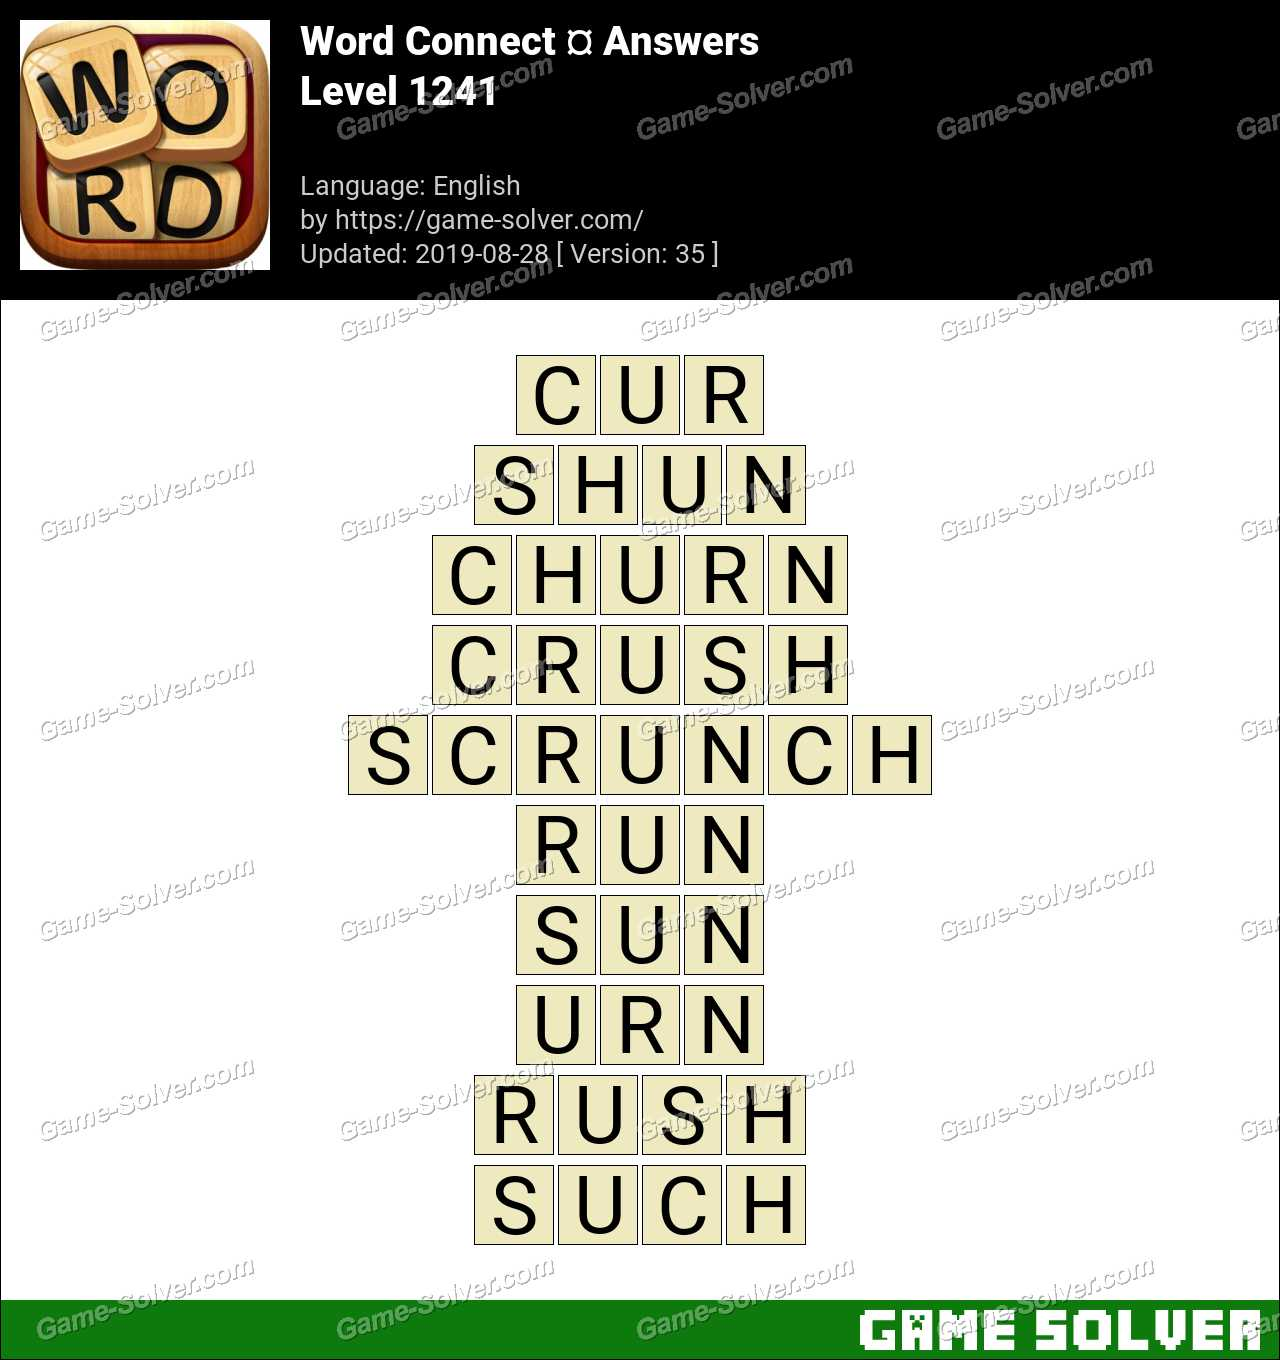 Word Connect Level 1241 Answers